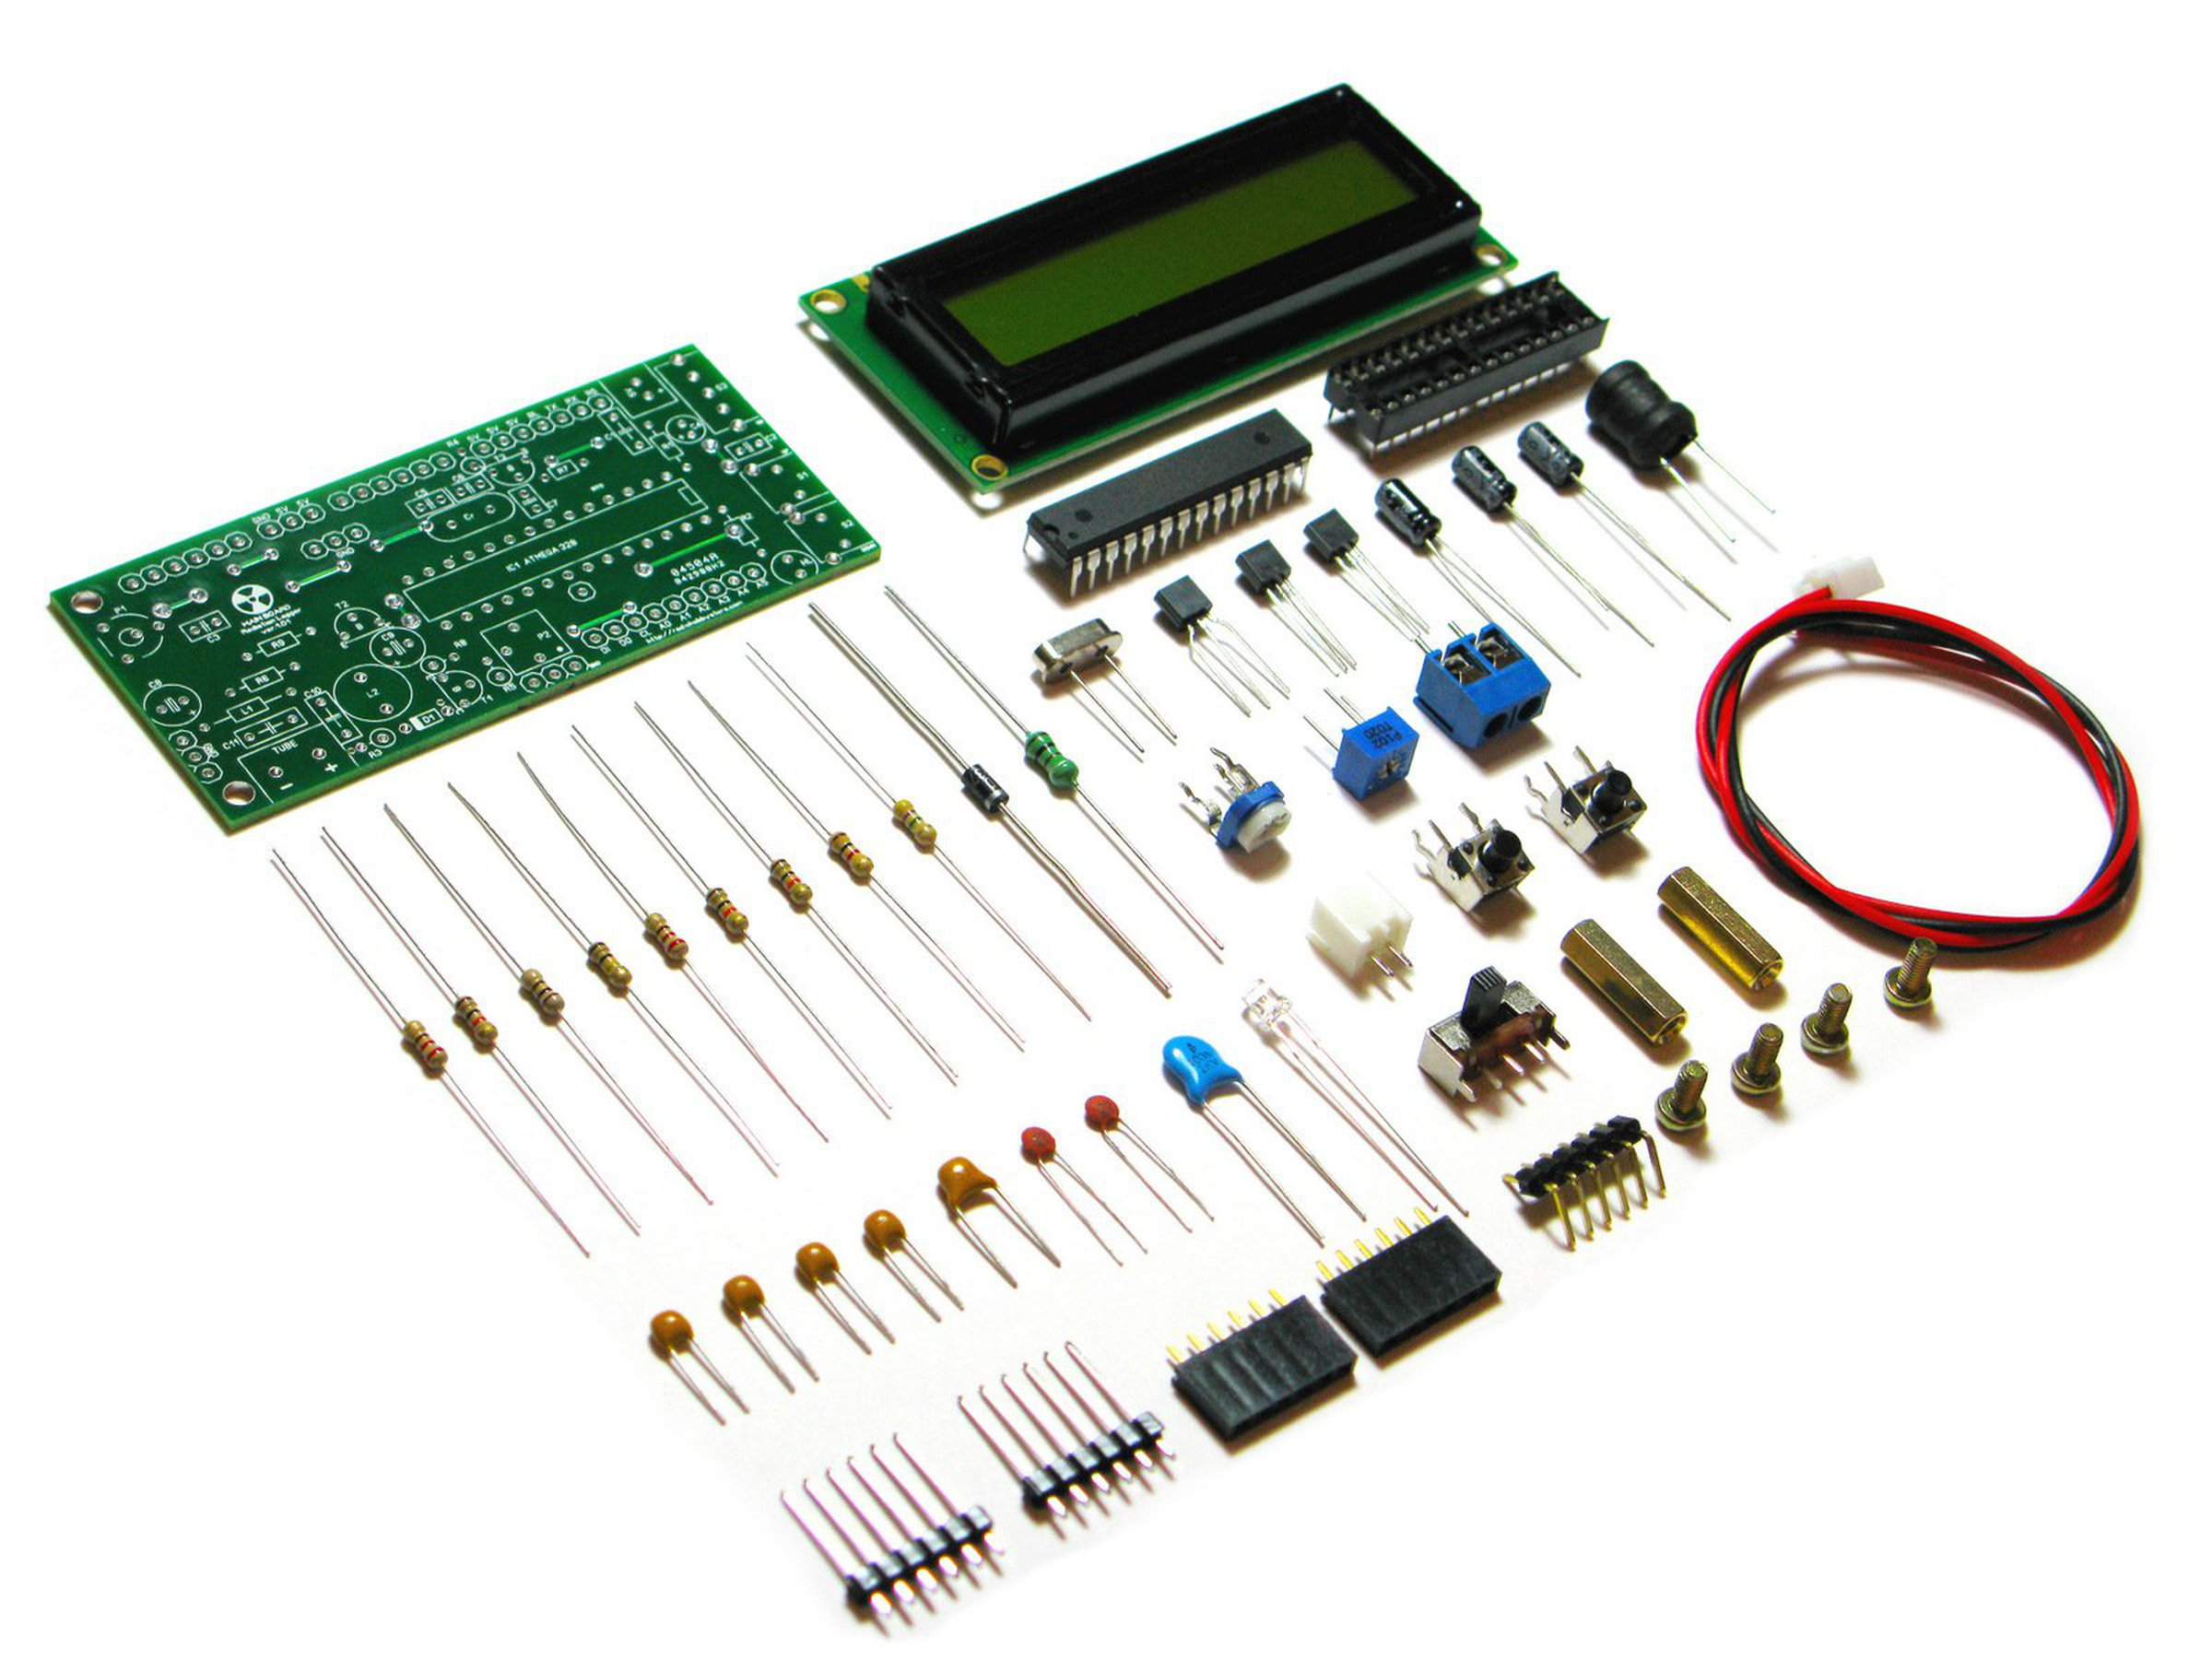 Diy arduino ide geiger counter kit with uart log from rh